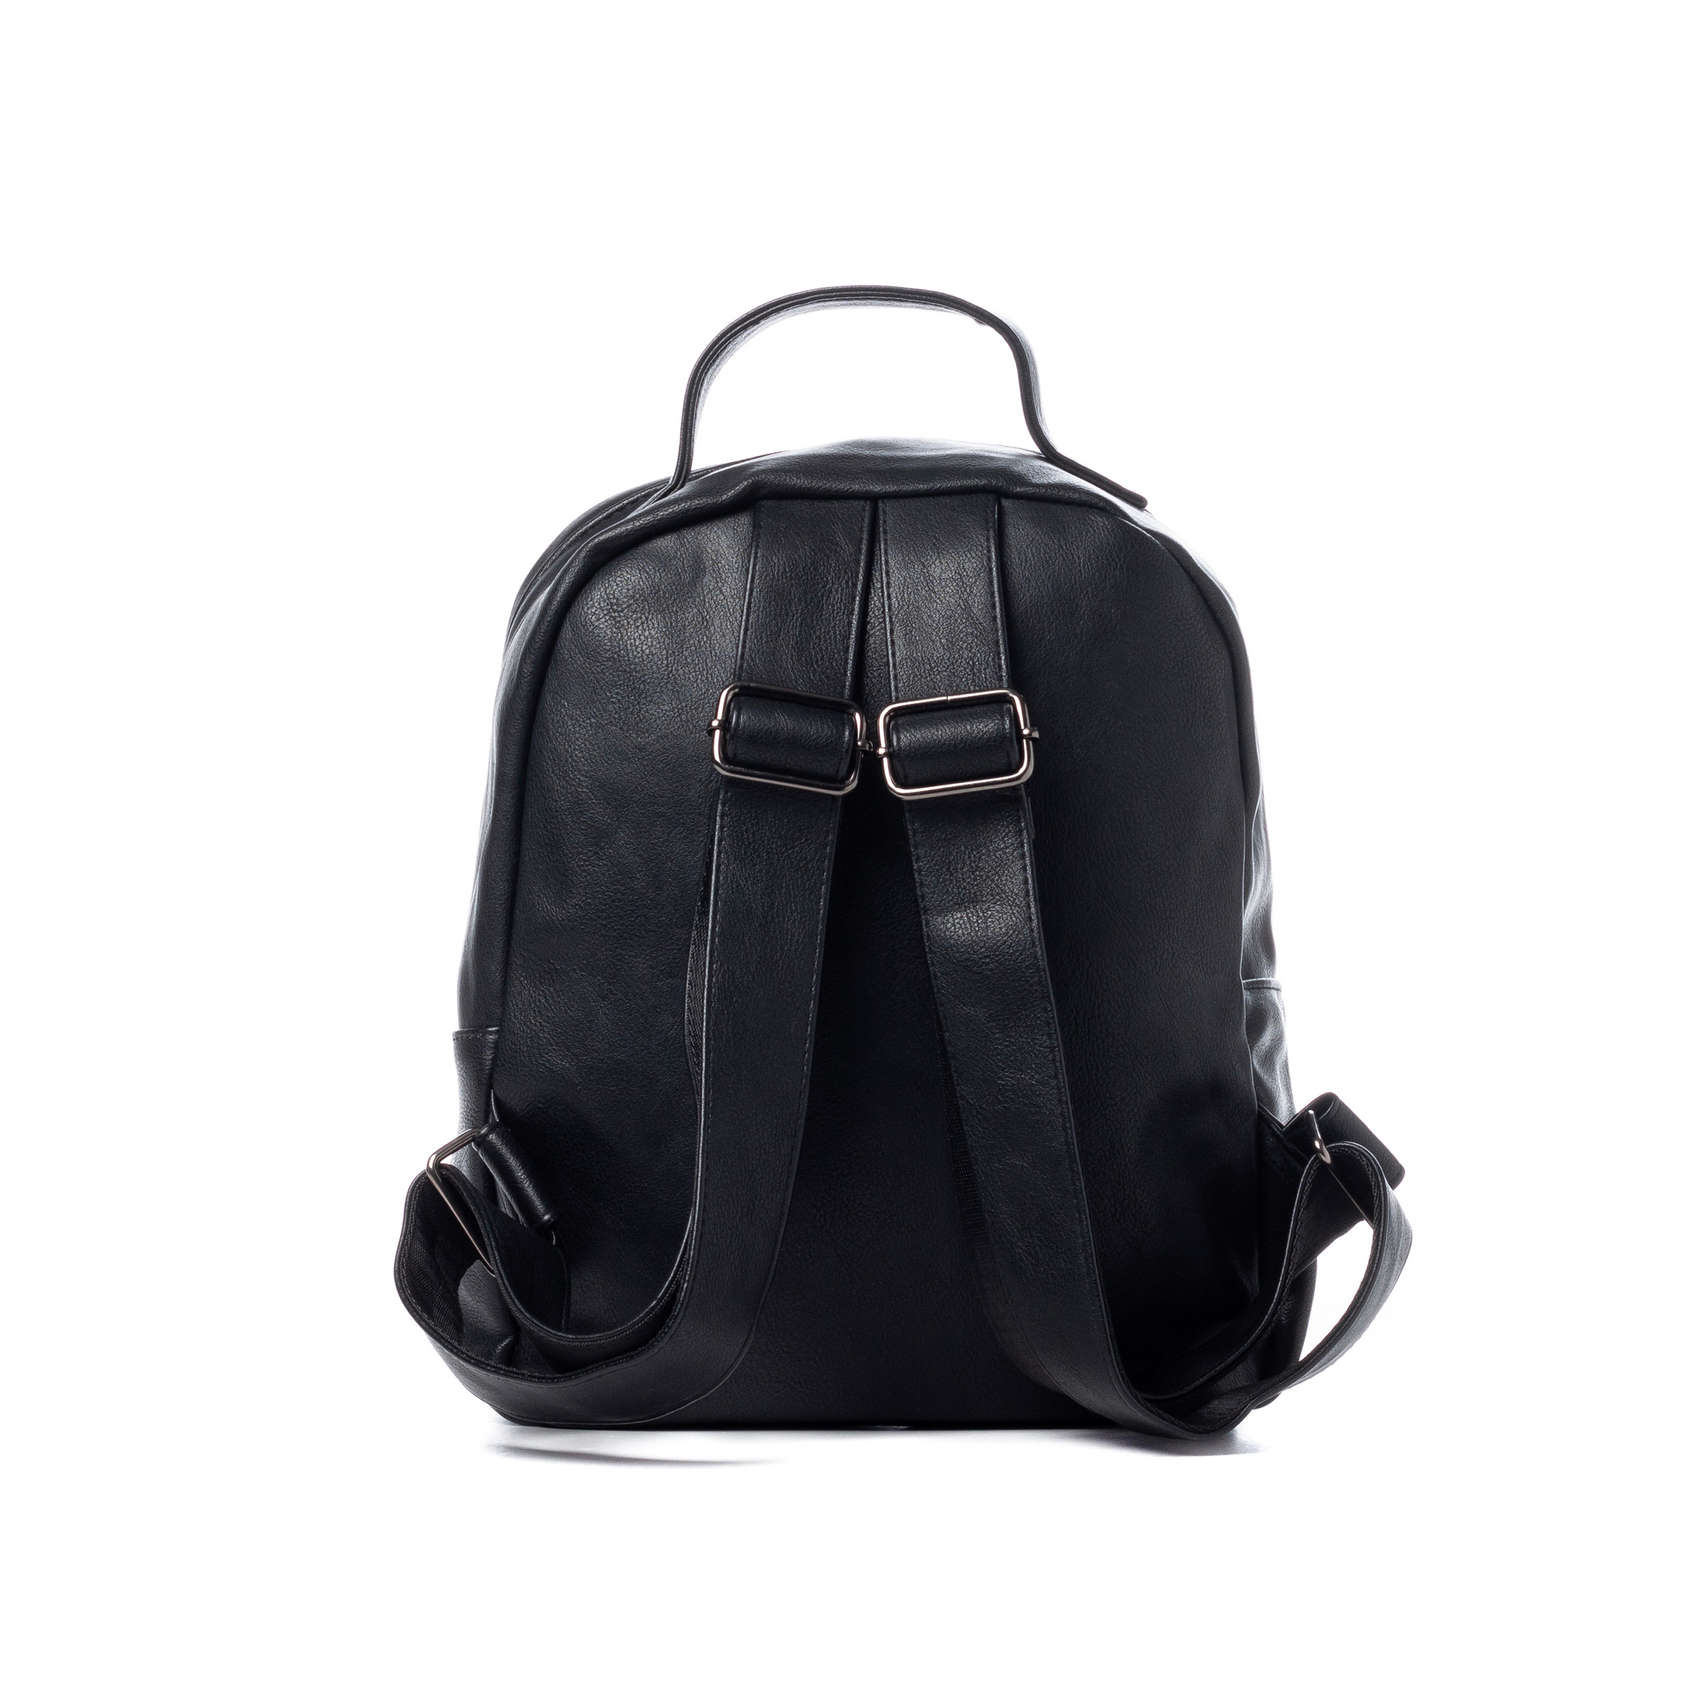 SPICY BACKPACK BASIC BLACK